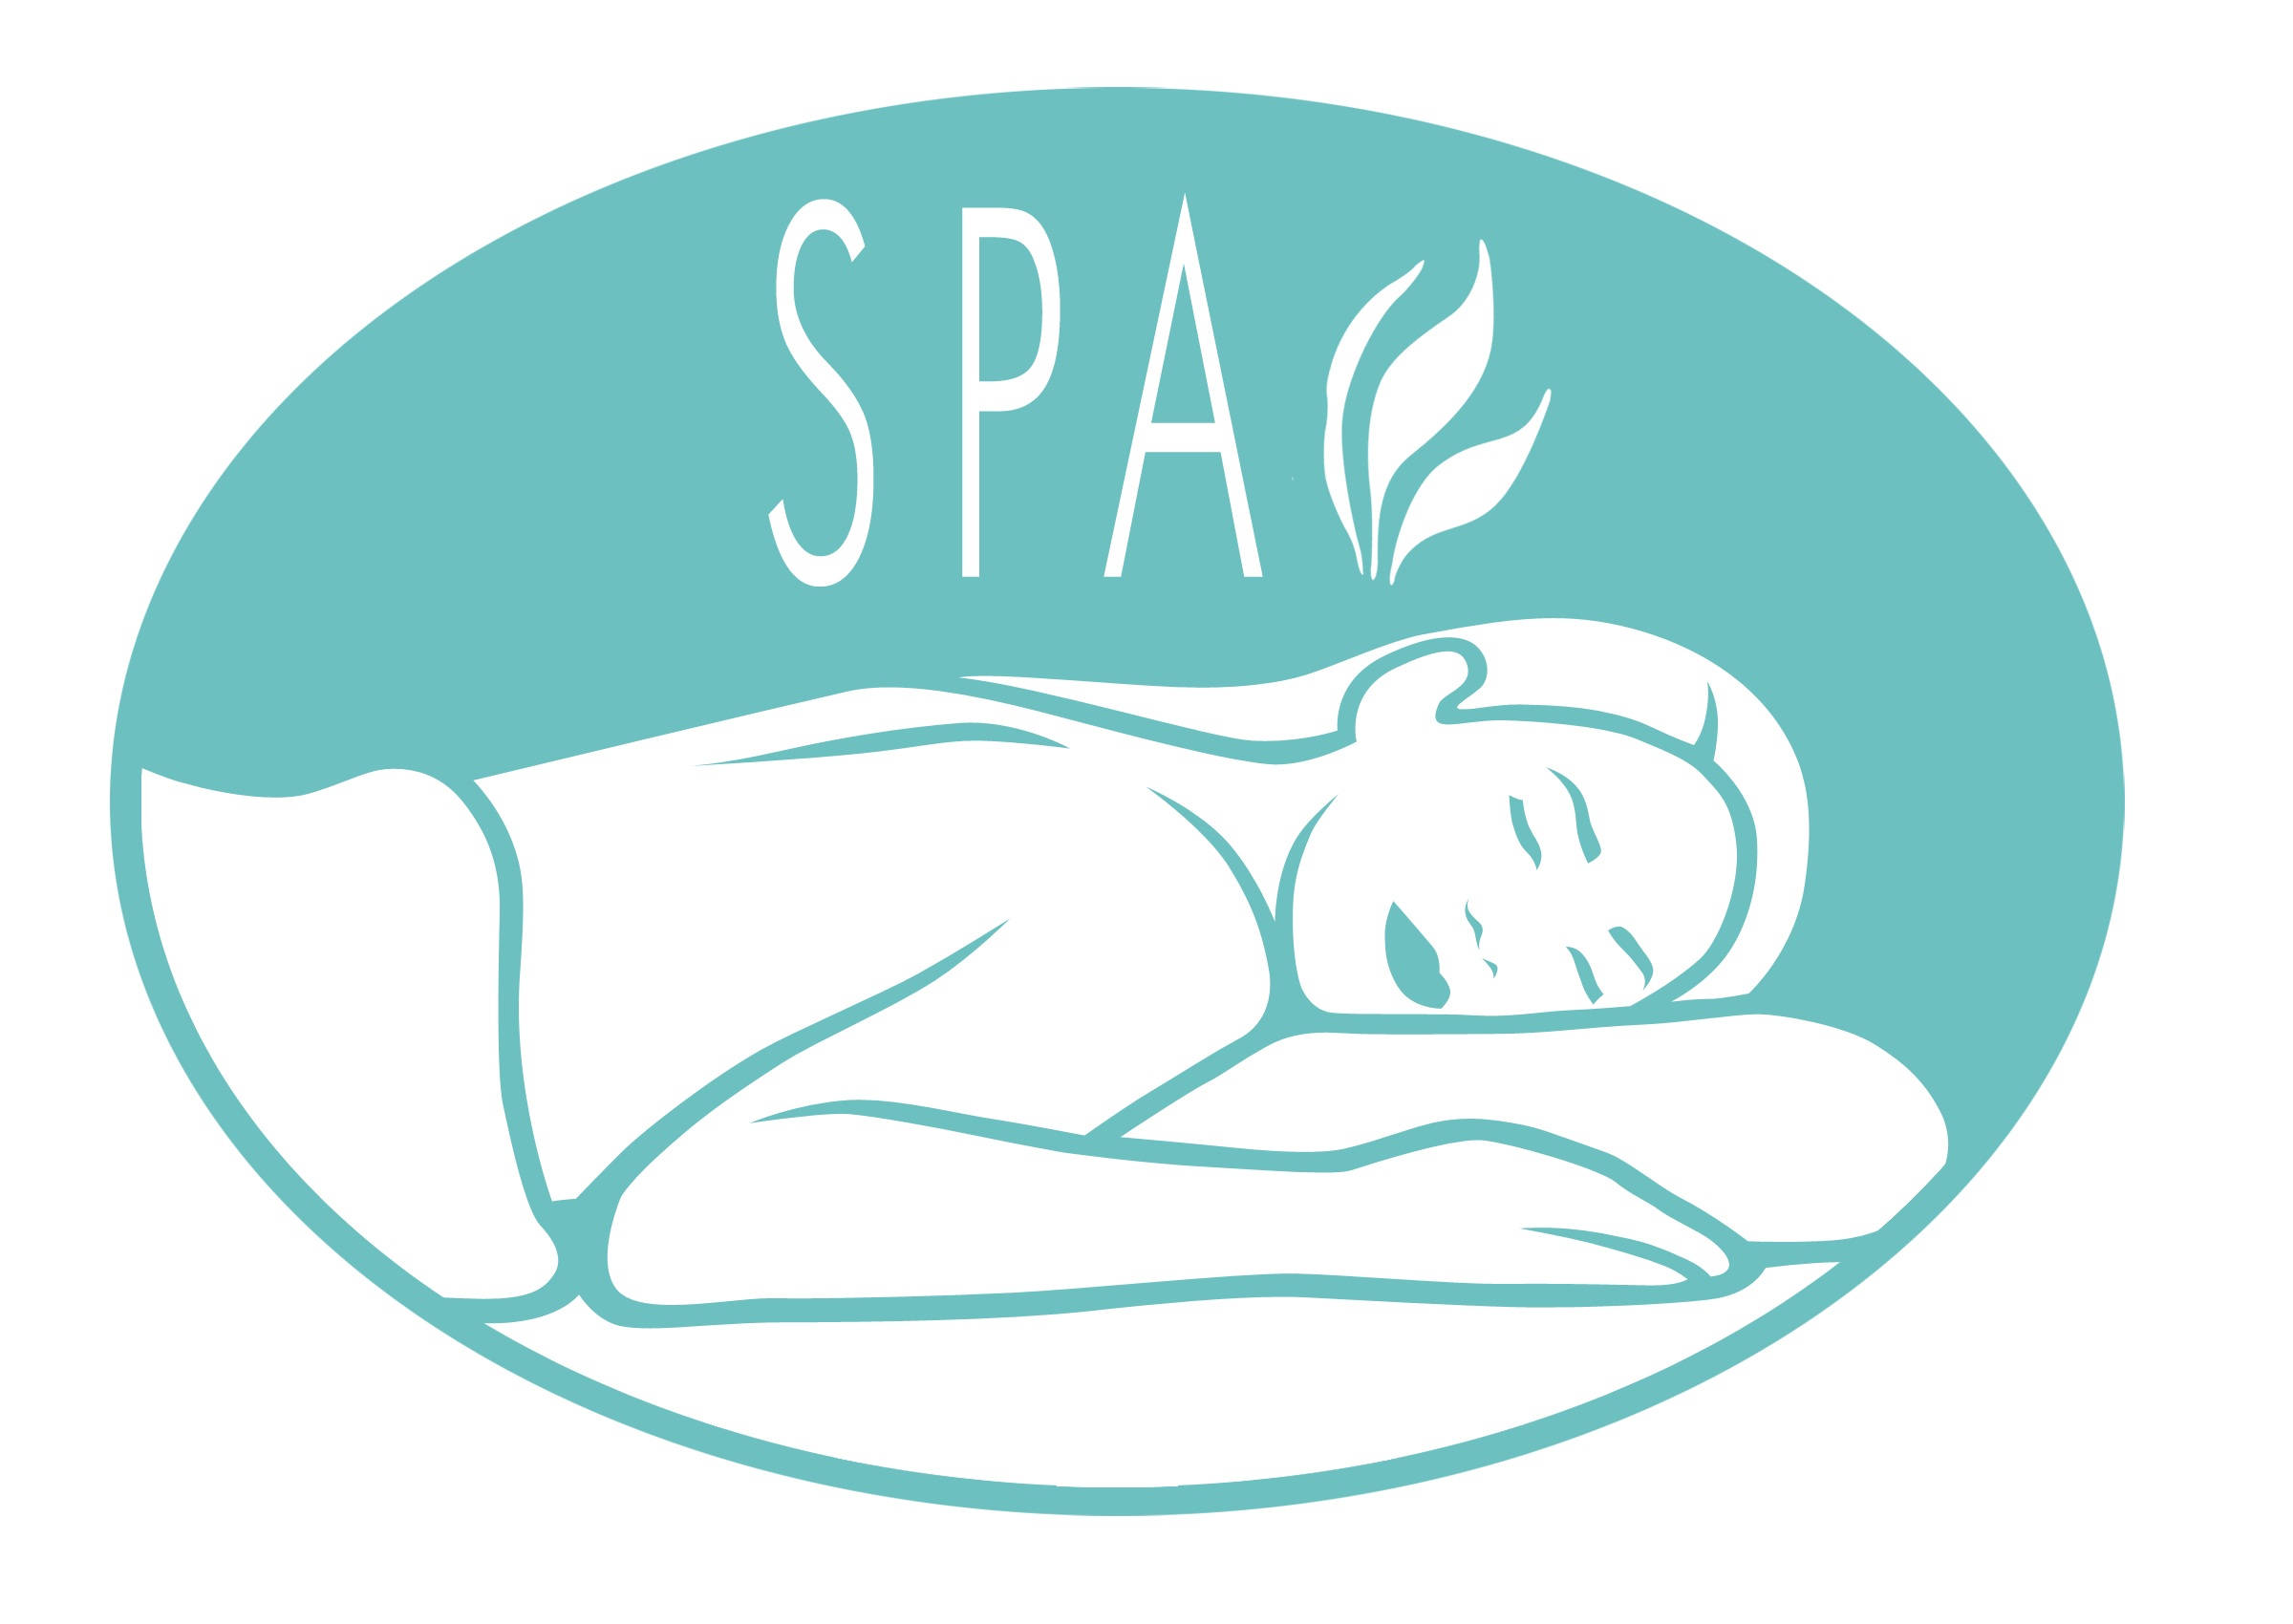 Creating a Calming Spa Logo With Positive Energy u2022 Online ...